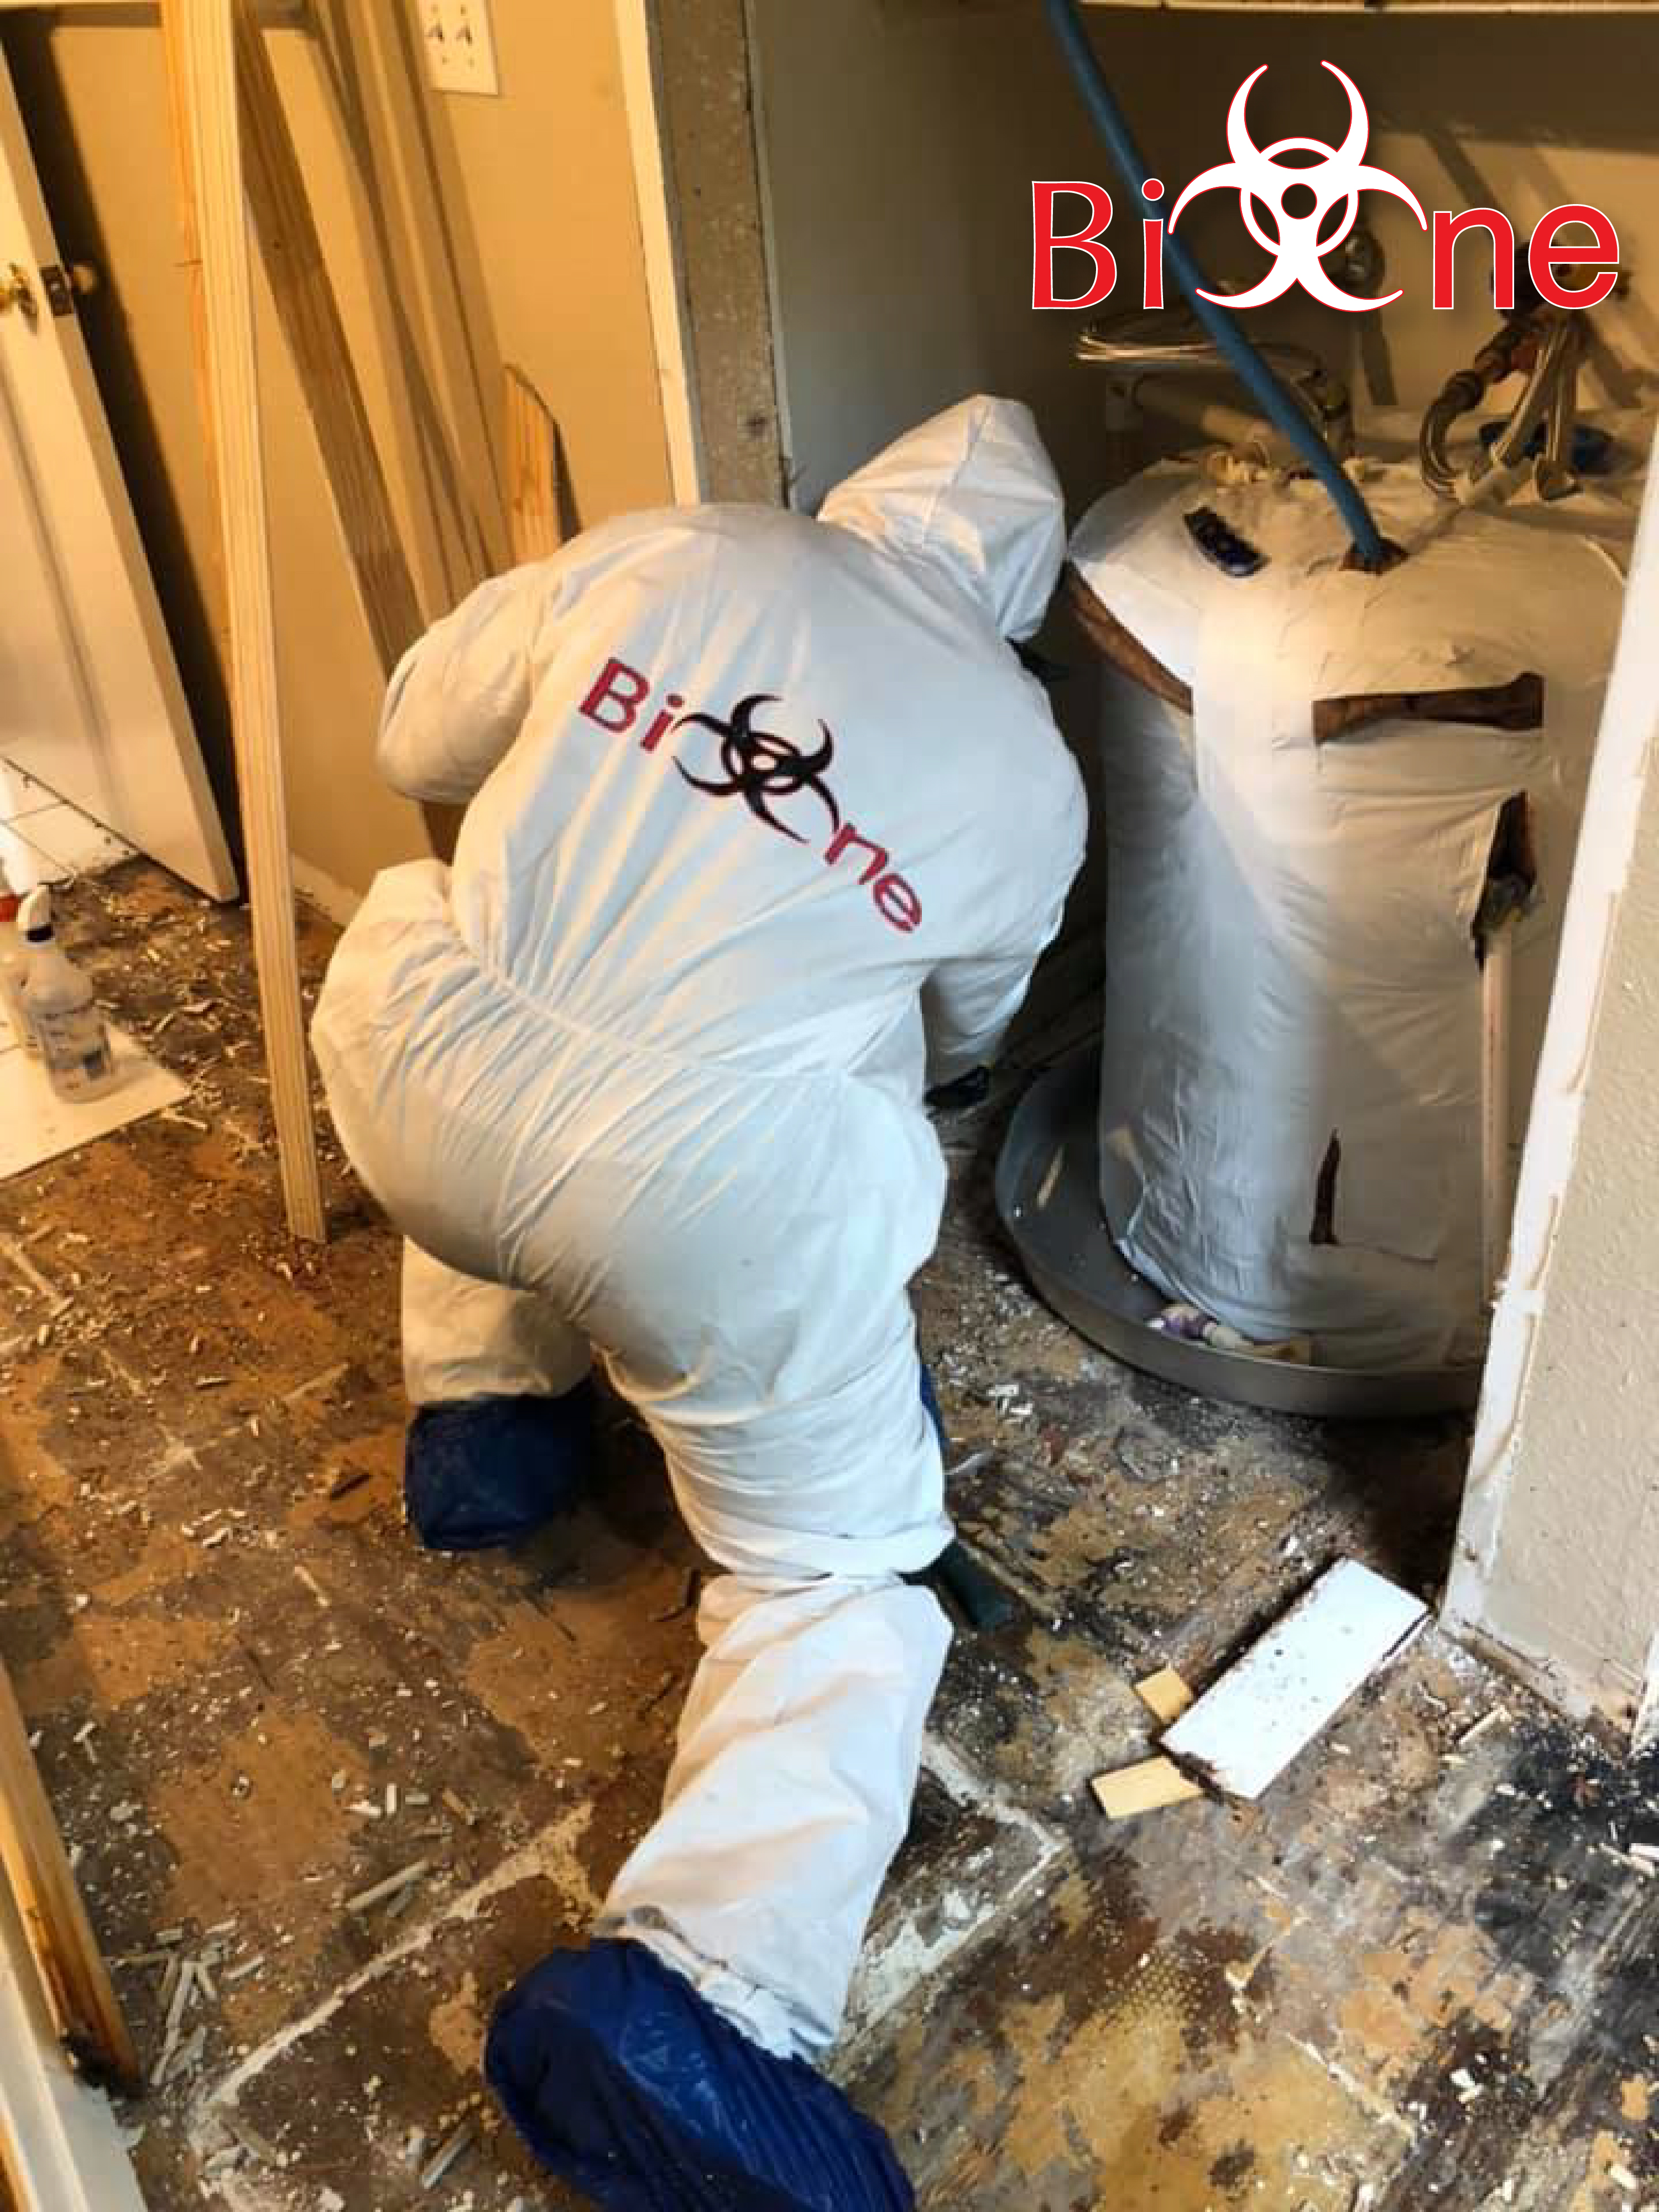 Bio-One certified technicians will thoroughly revise your house or property to clean and remediate damage from rodent droppings.